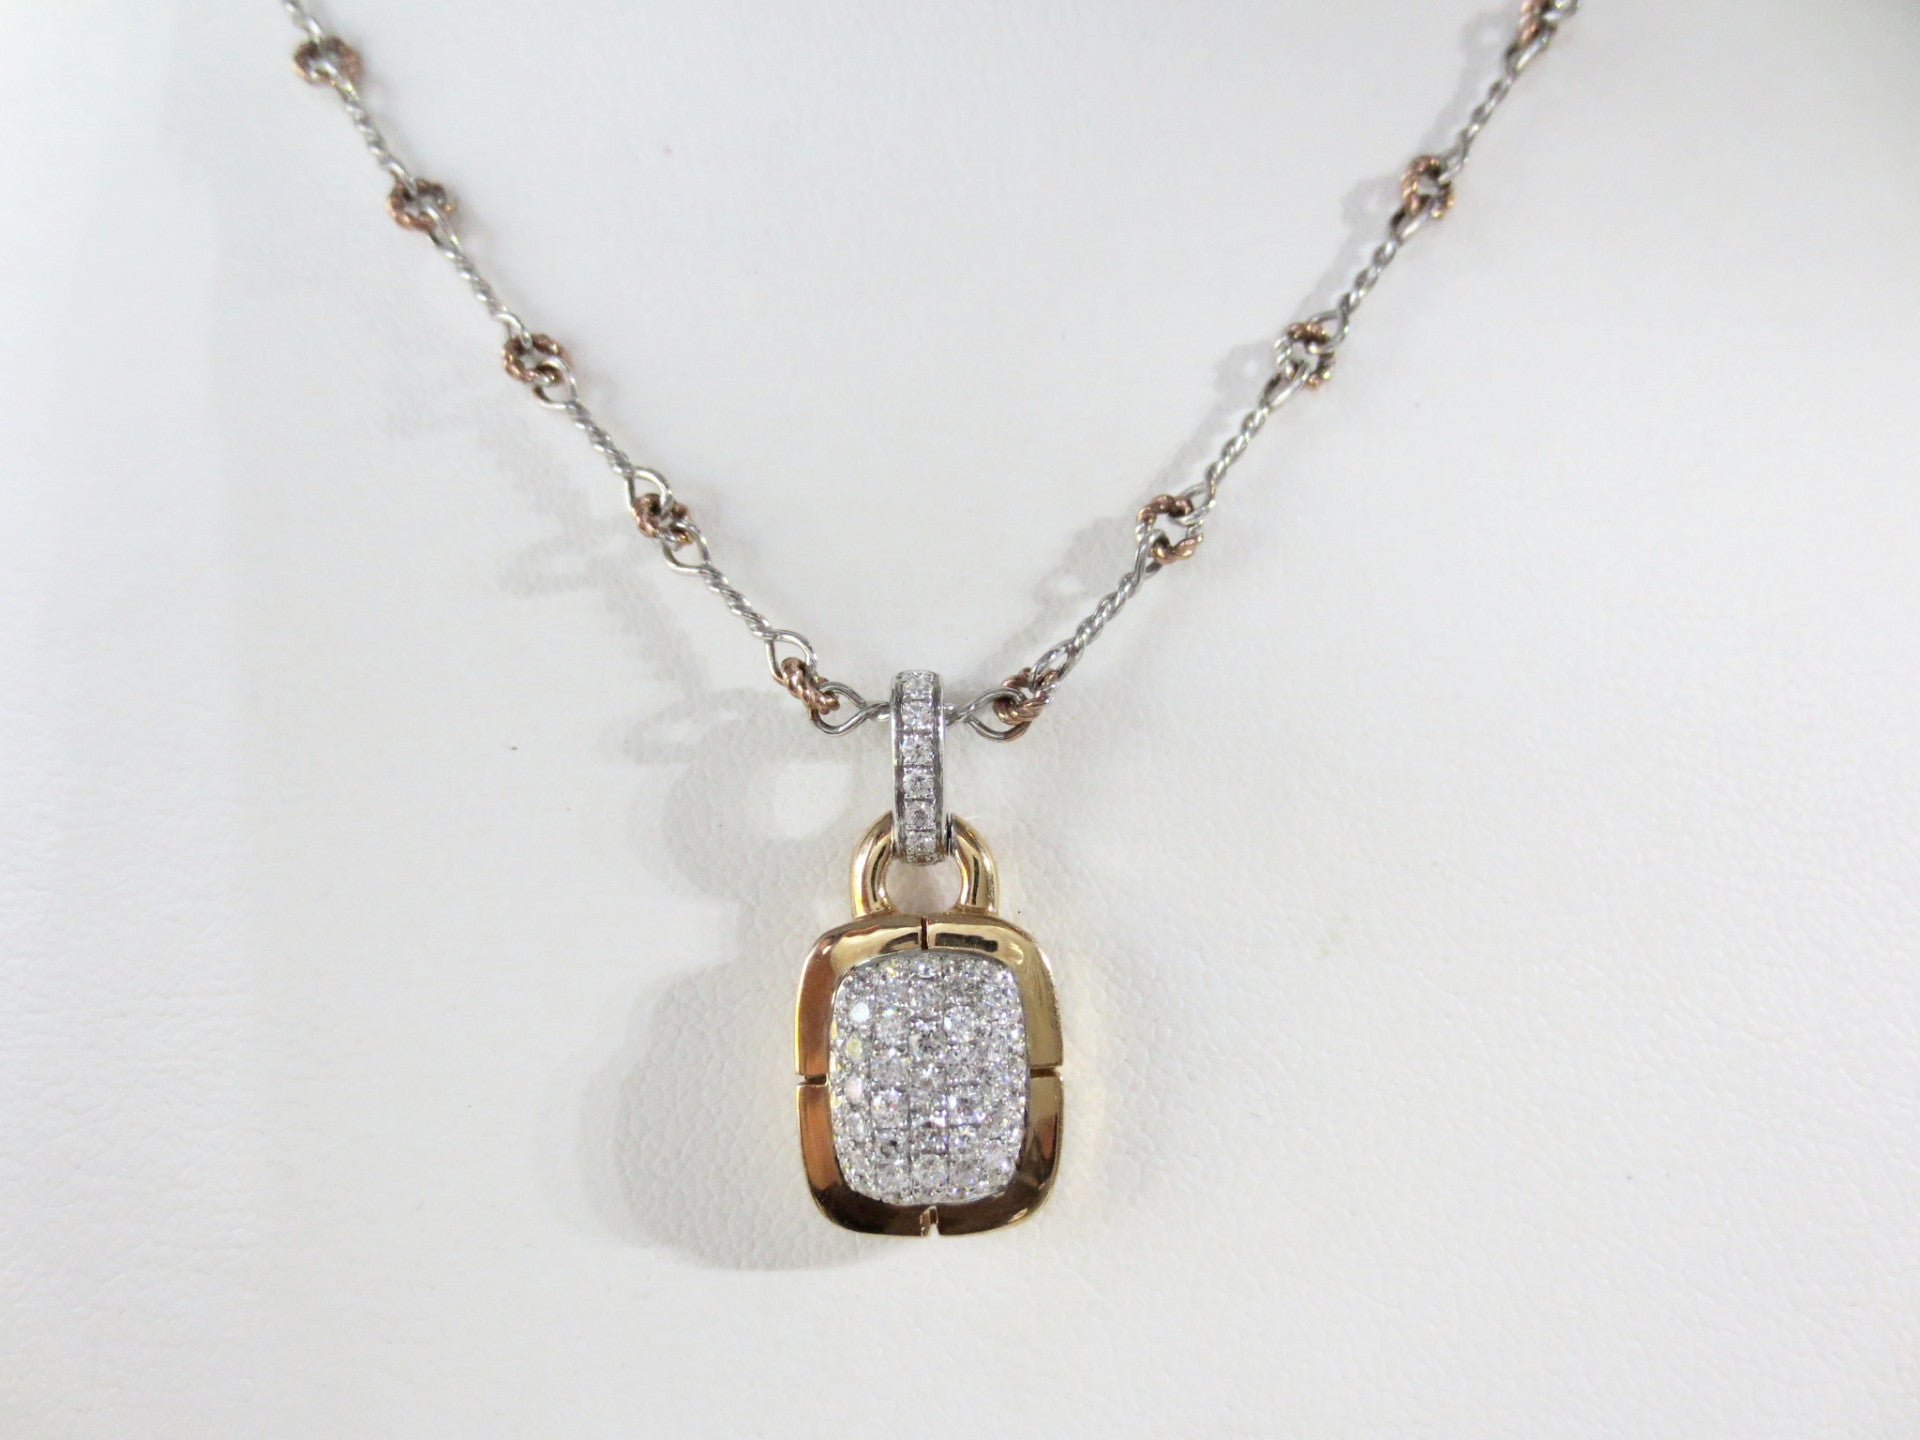 ksvhs necklace pretty bead square preville diamond lace penny pendant